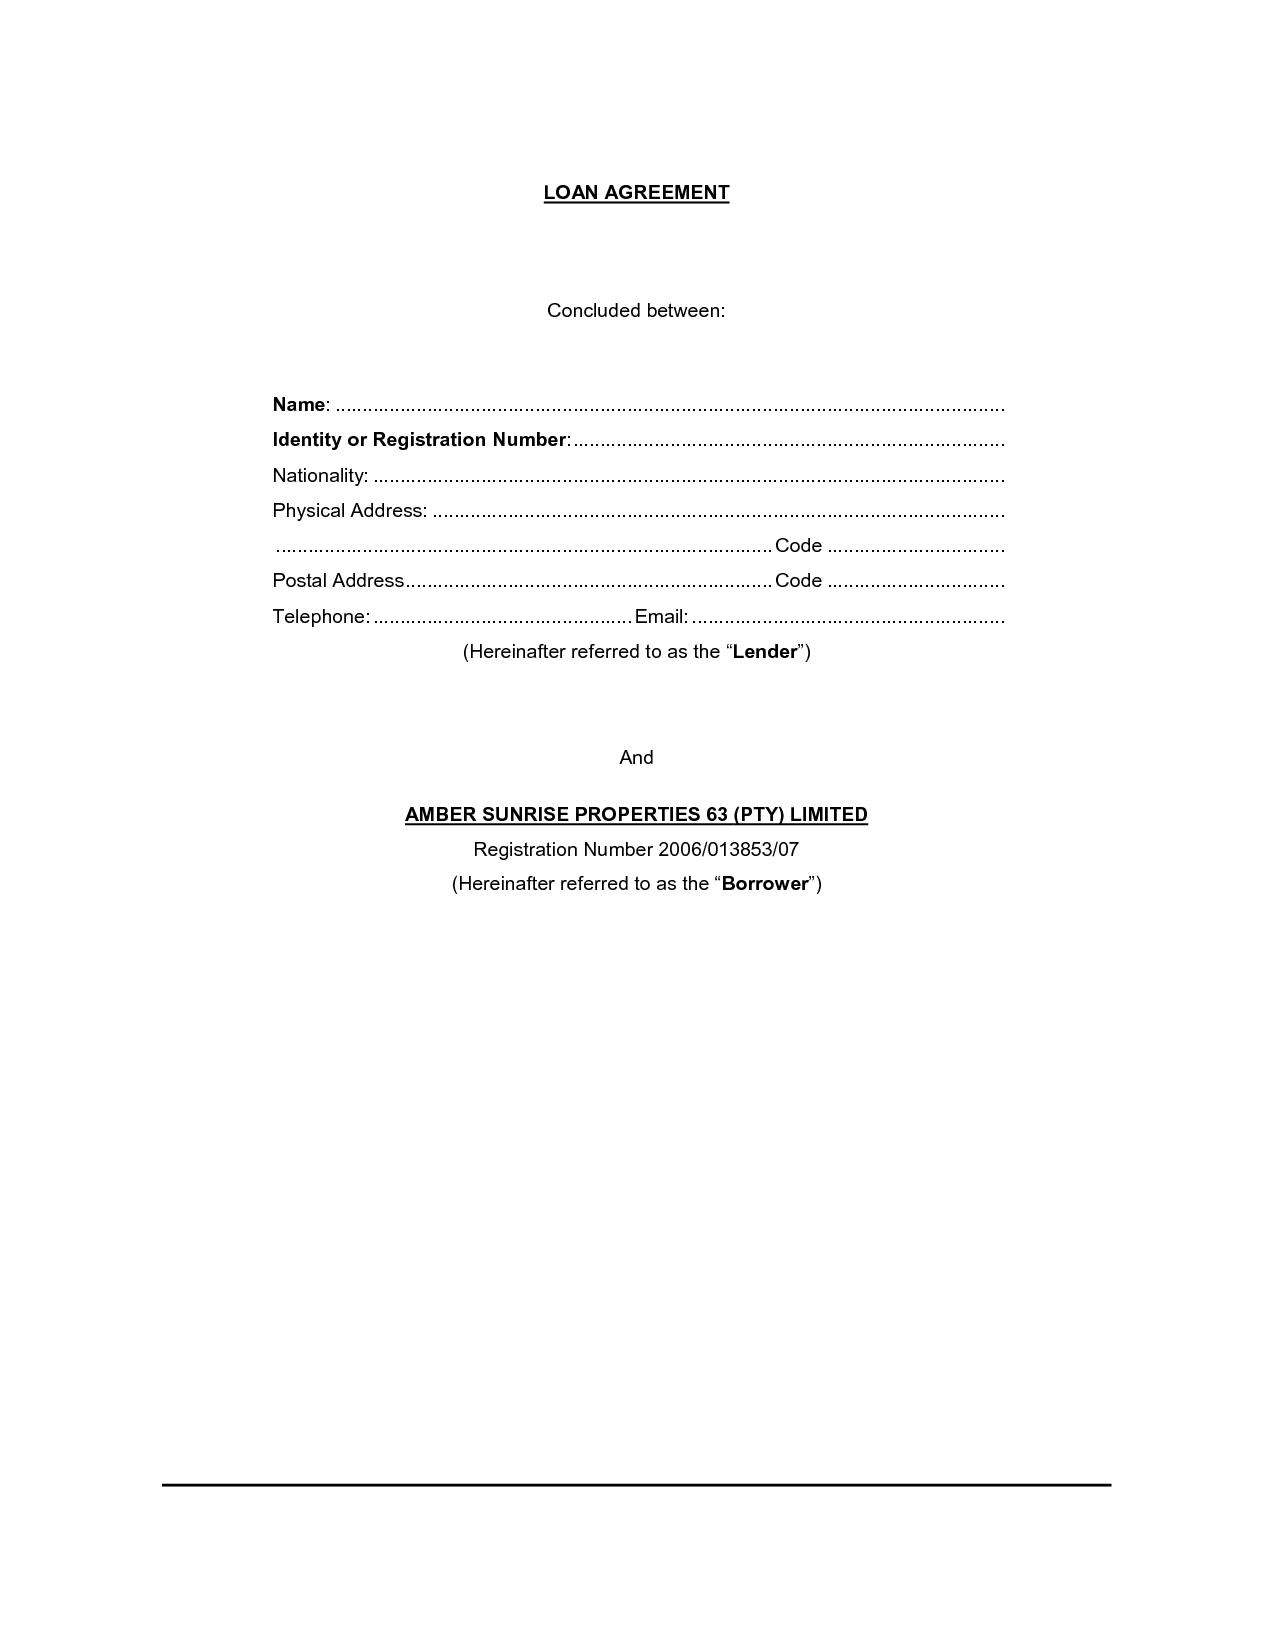 Promissory Letter Template - Loan Agreement Template Free Simple Loan Contract